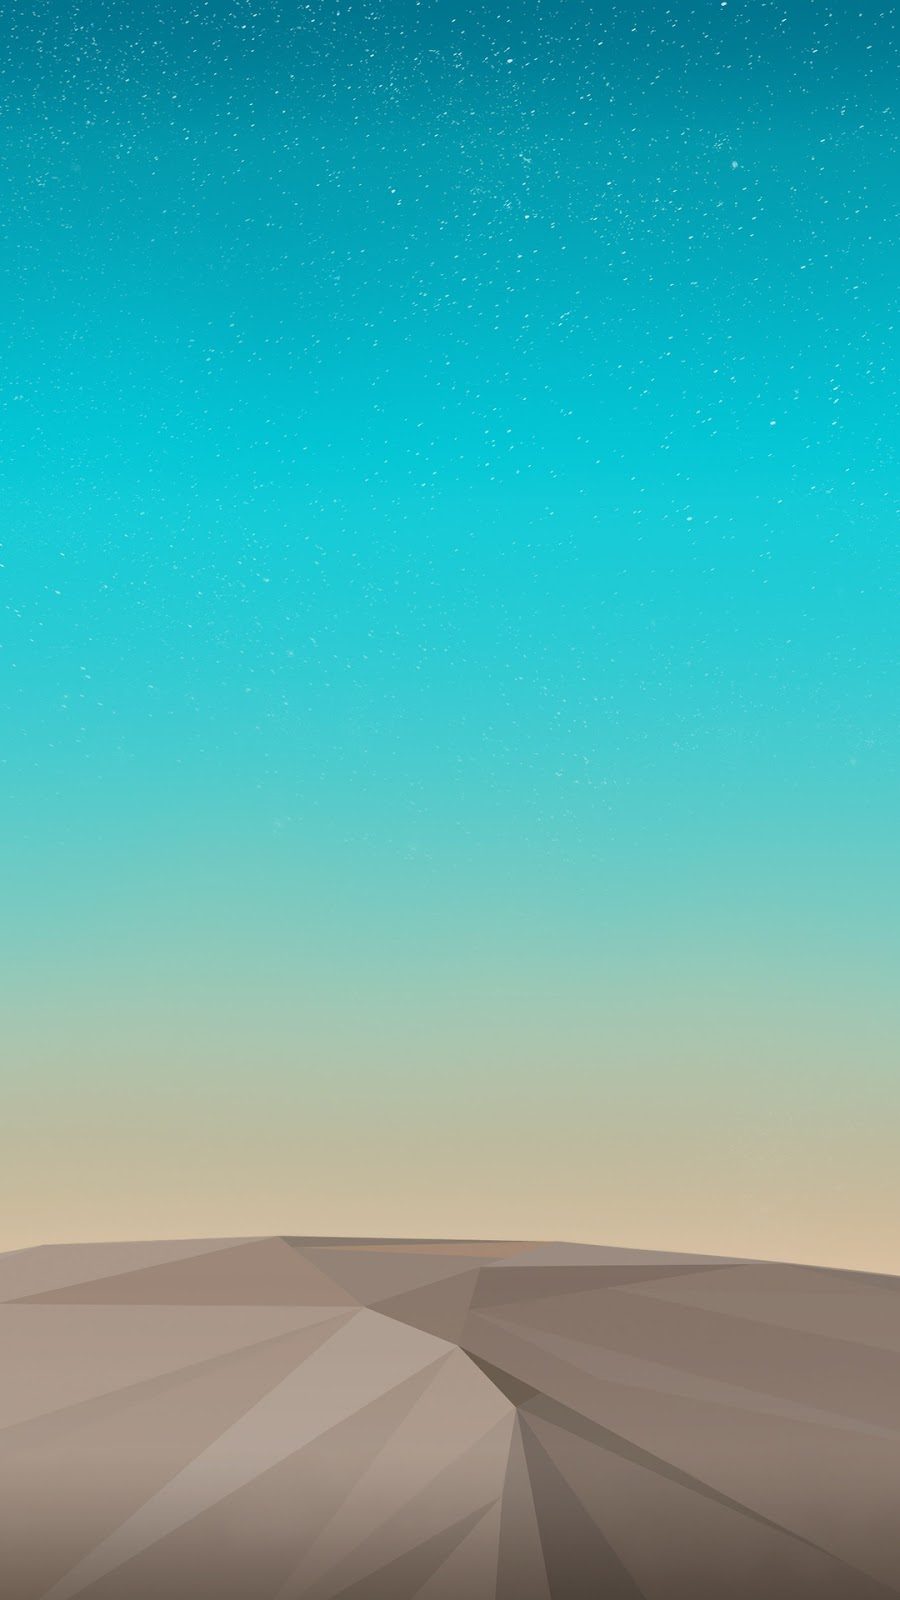 Wallpaper iphone latest - Latest Iphone 6 Hd Free Wallpapers